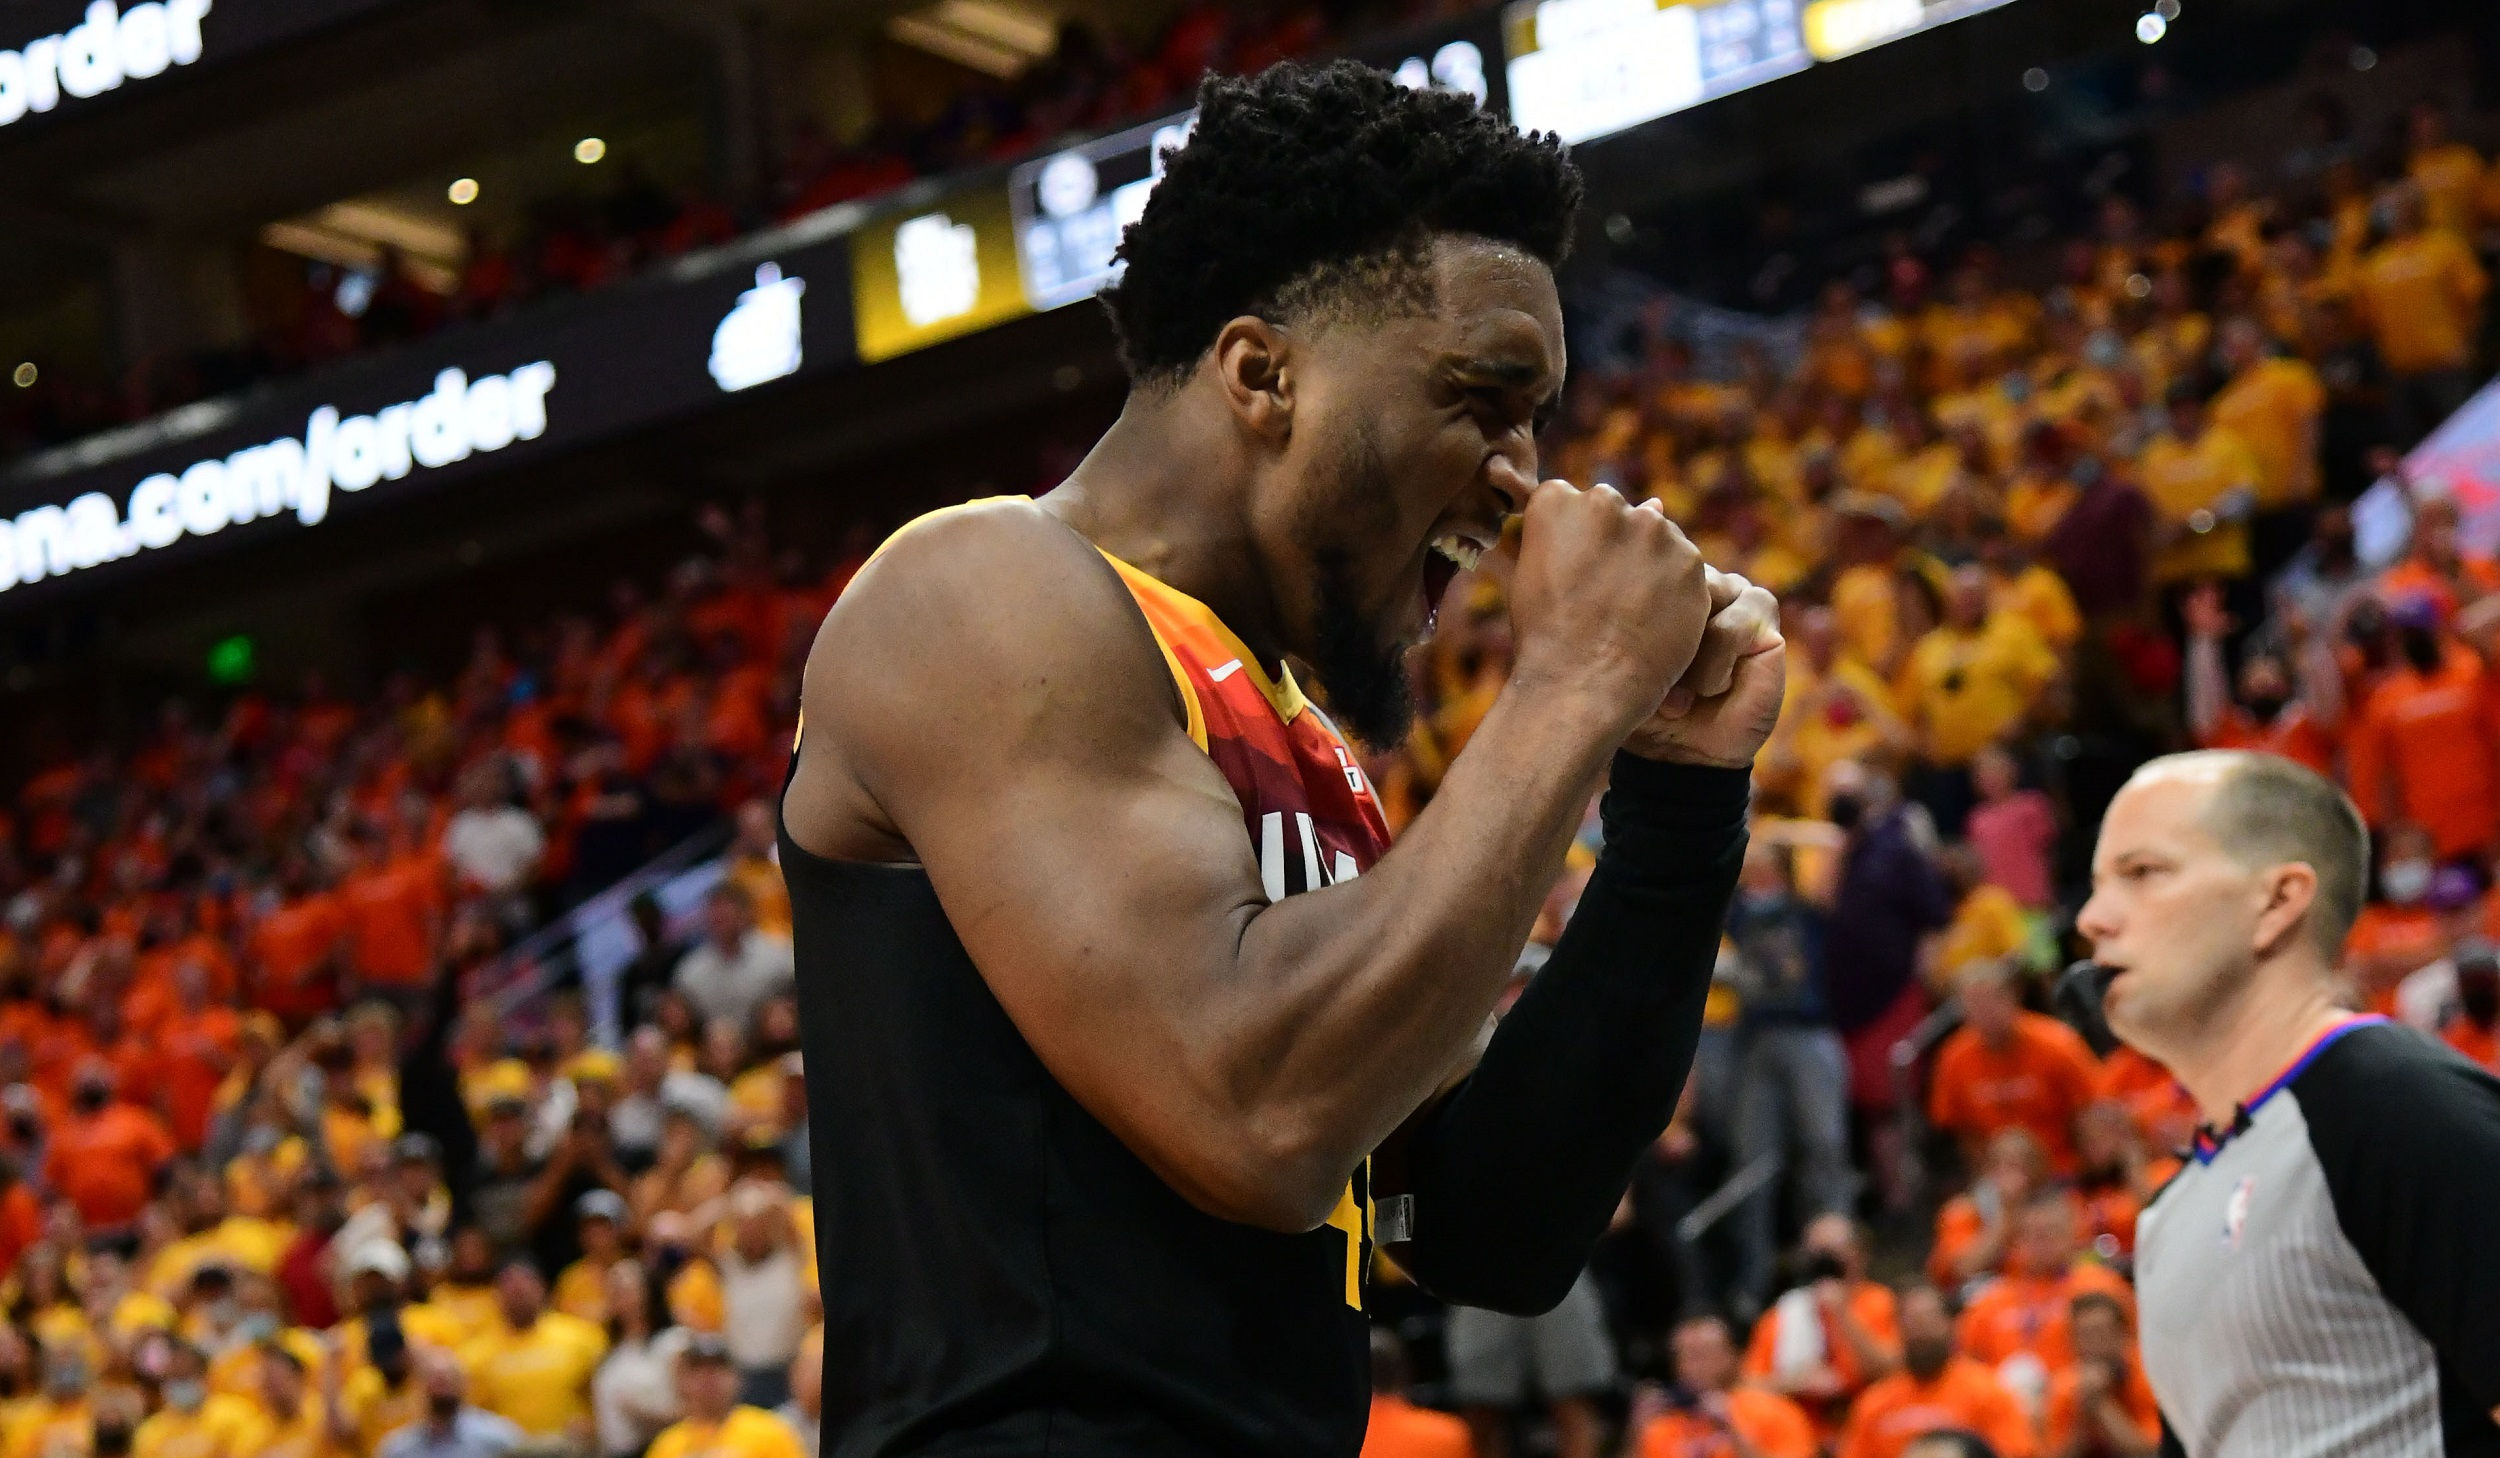 Utah Jazz guard Donovan Mitchell adds to playoff legend with monster Game 1